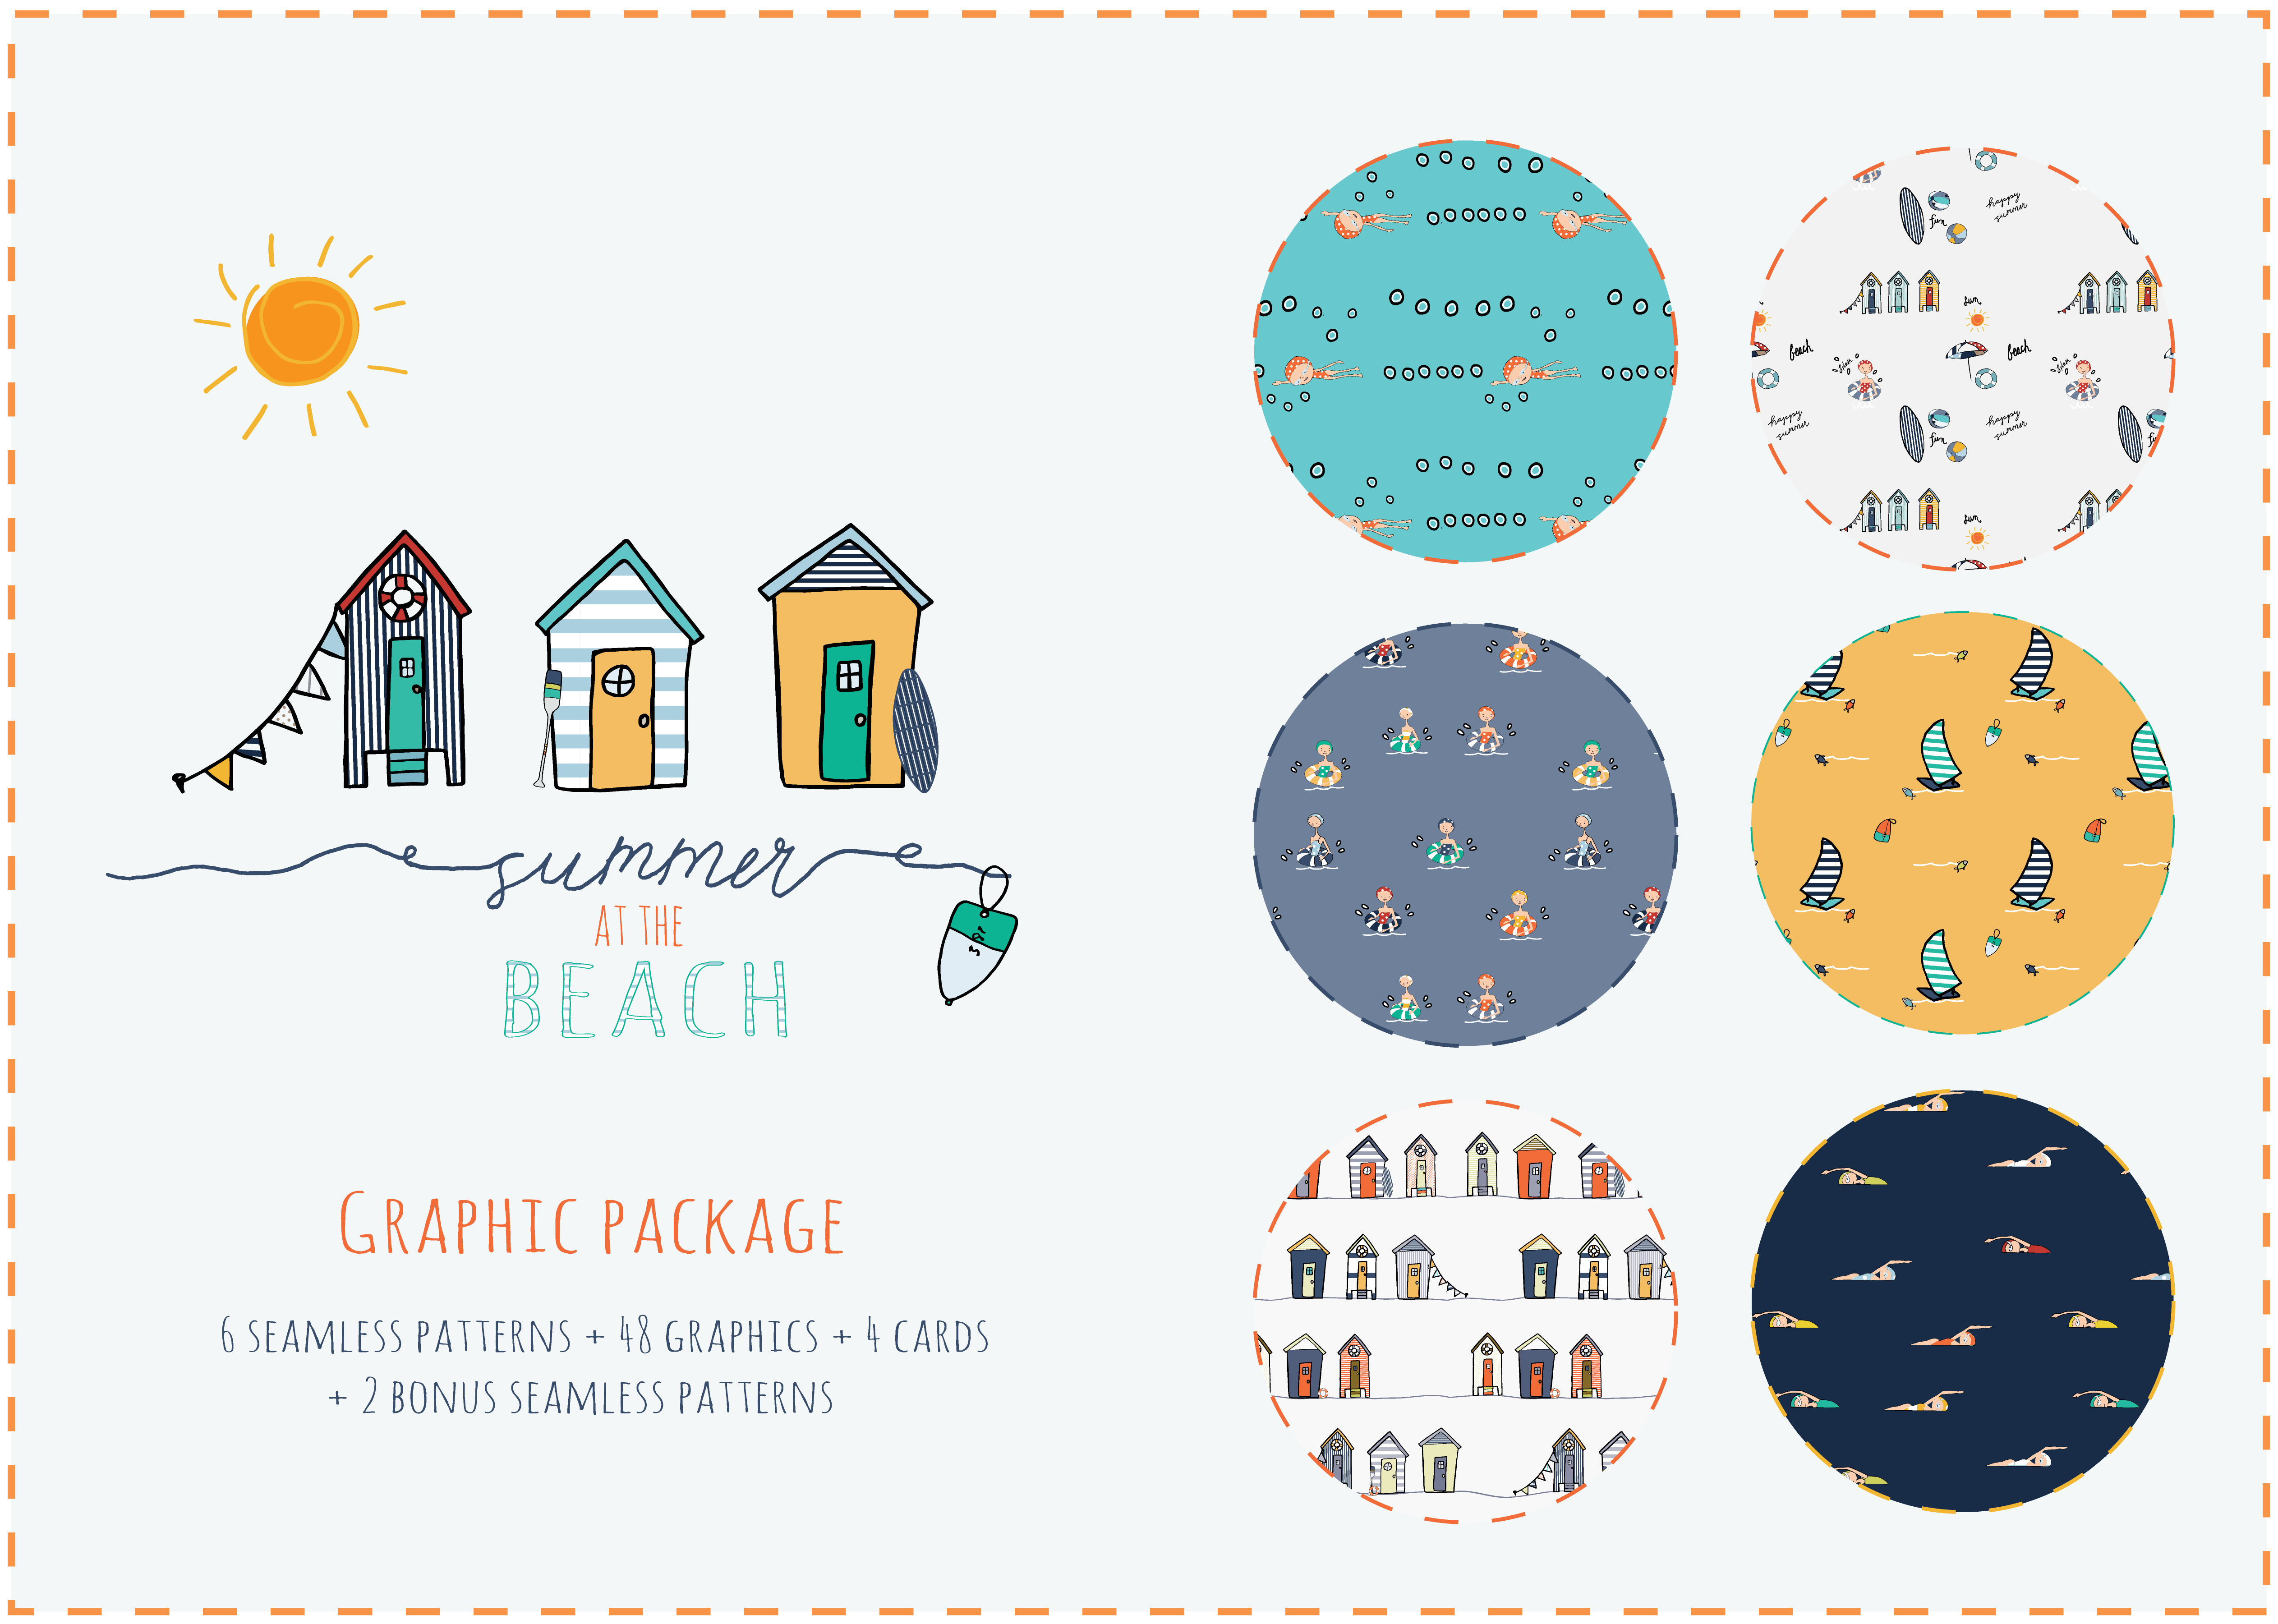 summer at the beach graphic package 6 2 bonus seamless patterns